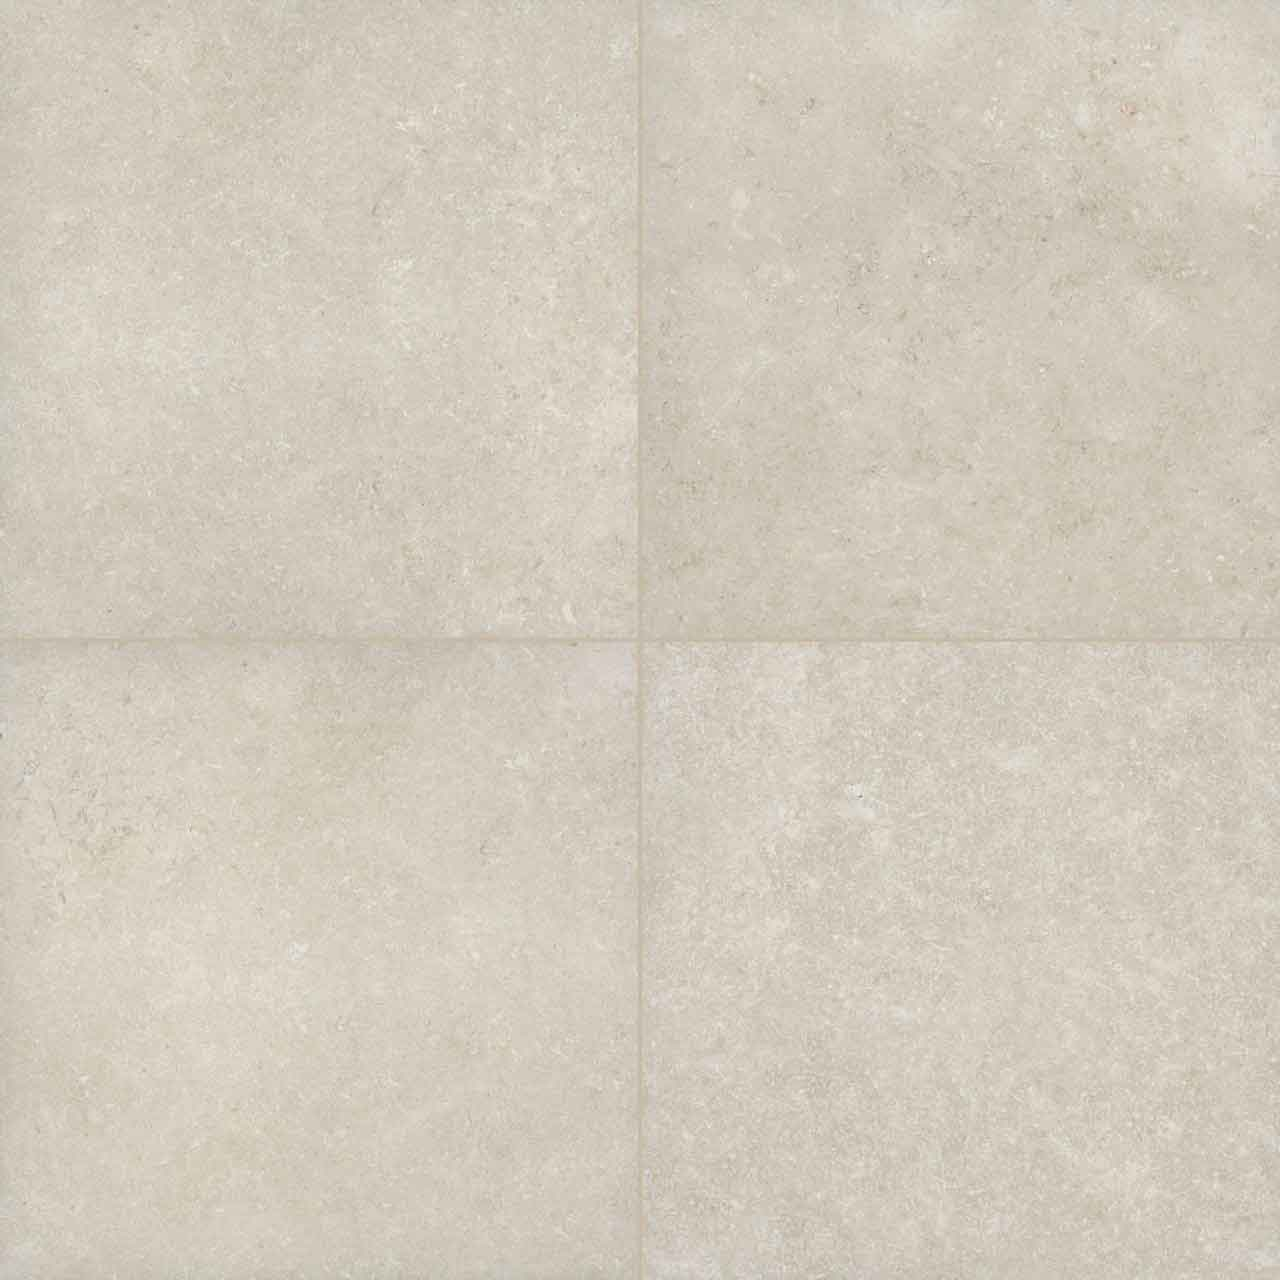 LIVINGSTYLE PEARL PAVER